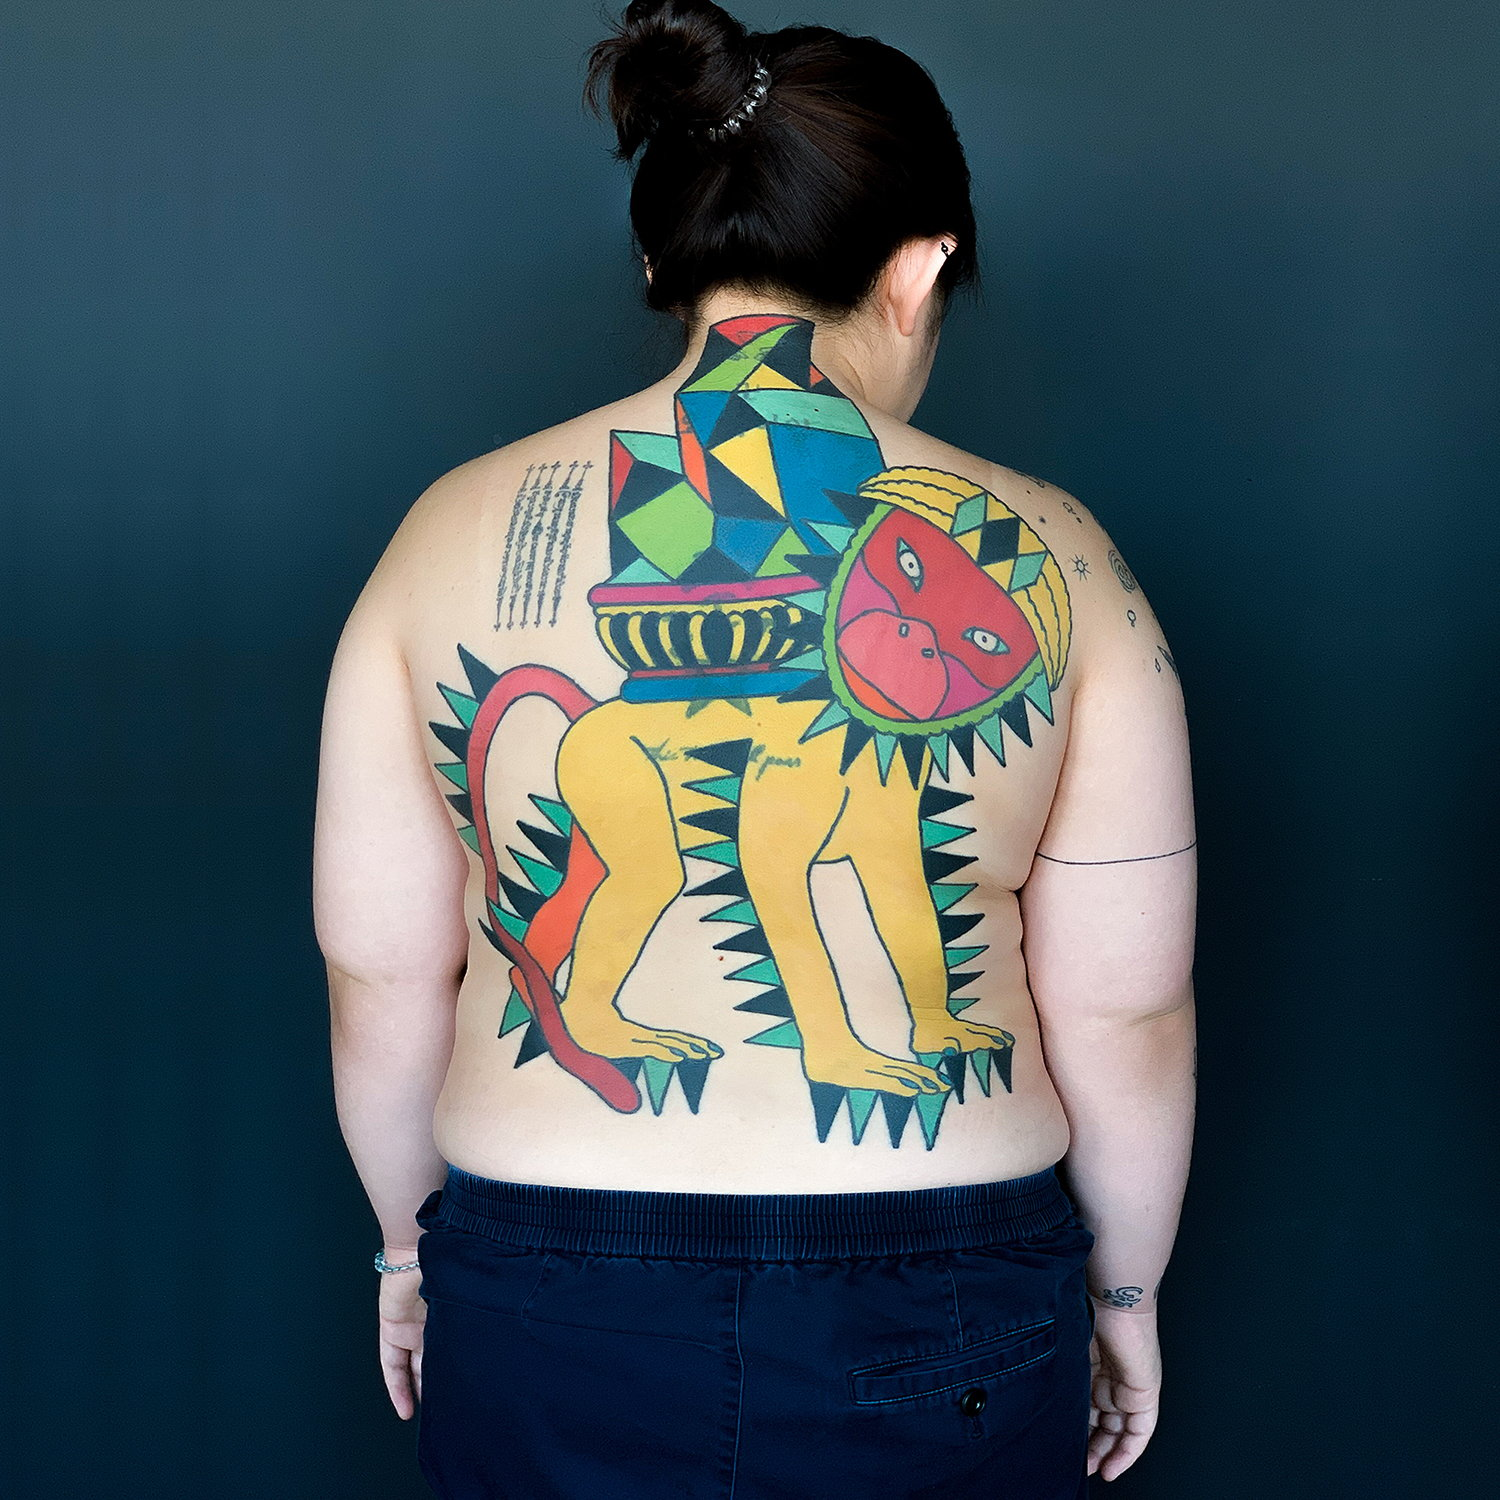 back tattoo, abstract color tattoo, dadaism